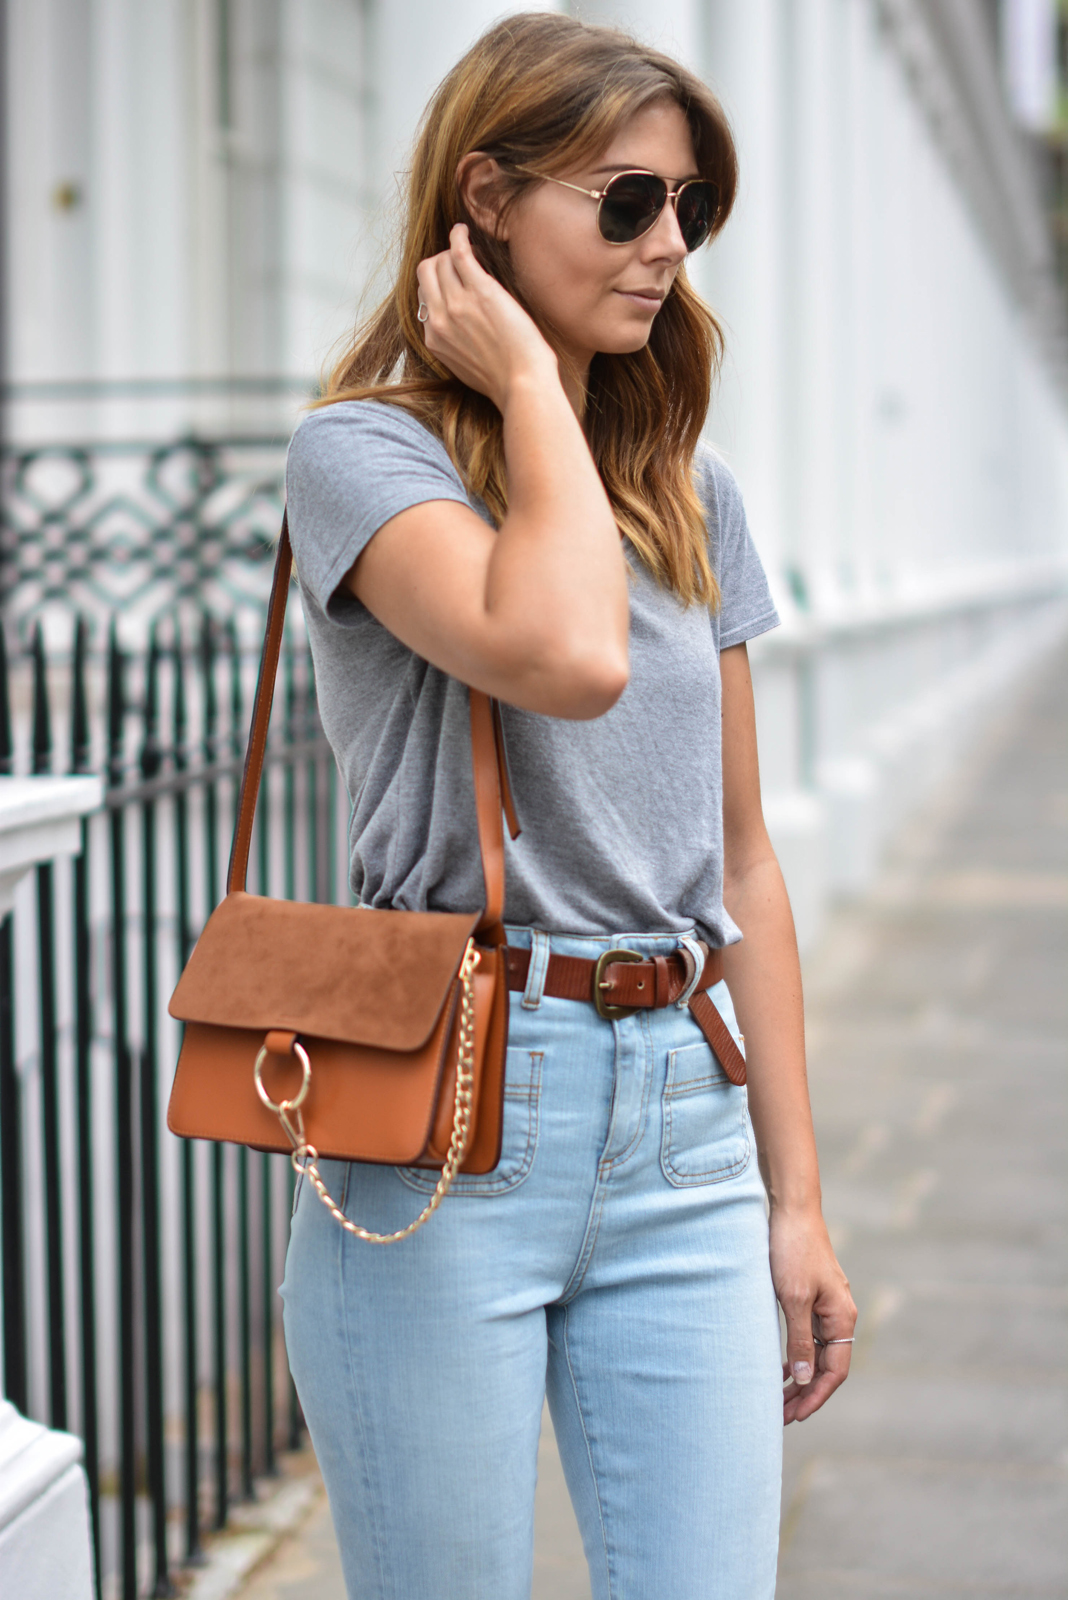 EJSTYLE wears Grey basic v neck t shirt, aviator sungasses,Tan suede leather chloe style Faye bag by Jessica Buurman, High waisted flare jeans, tan knot belt OOTD